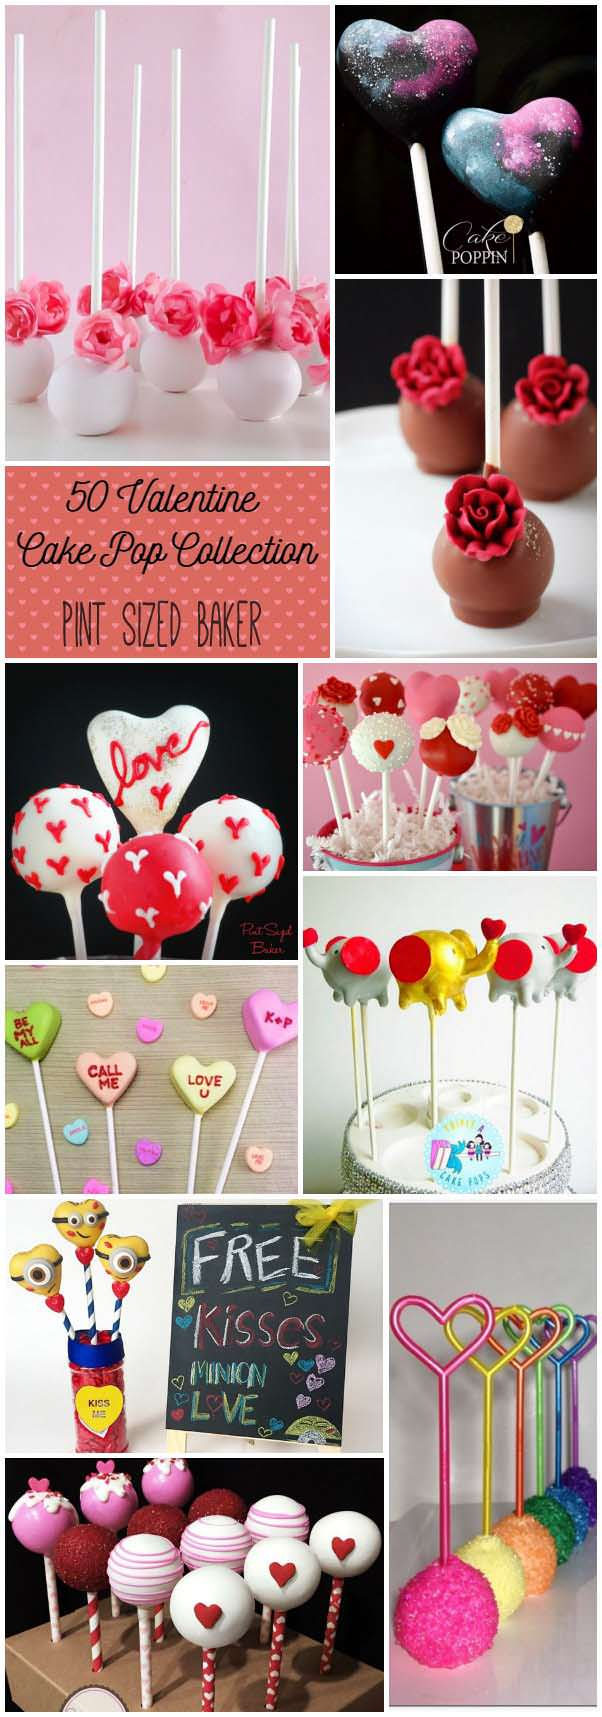 I'm loving this collection of 50 Valentine Cake Pops. they are the perfect way to show someone you love them!